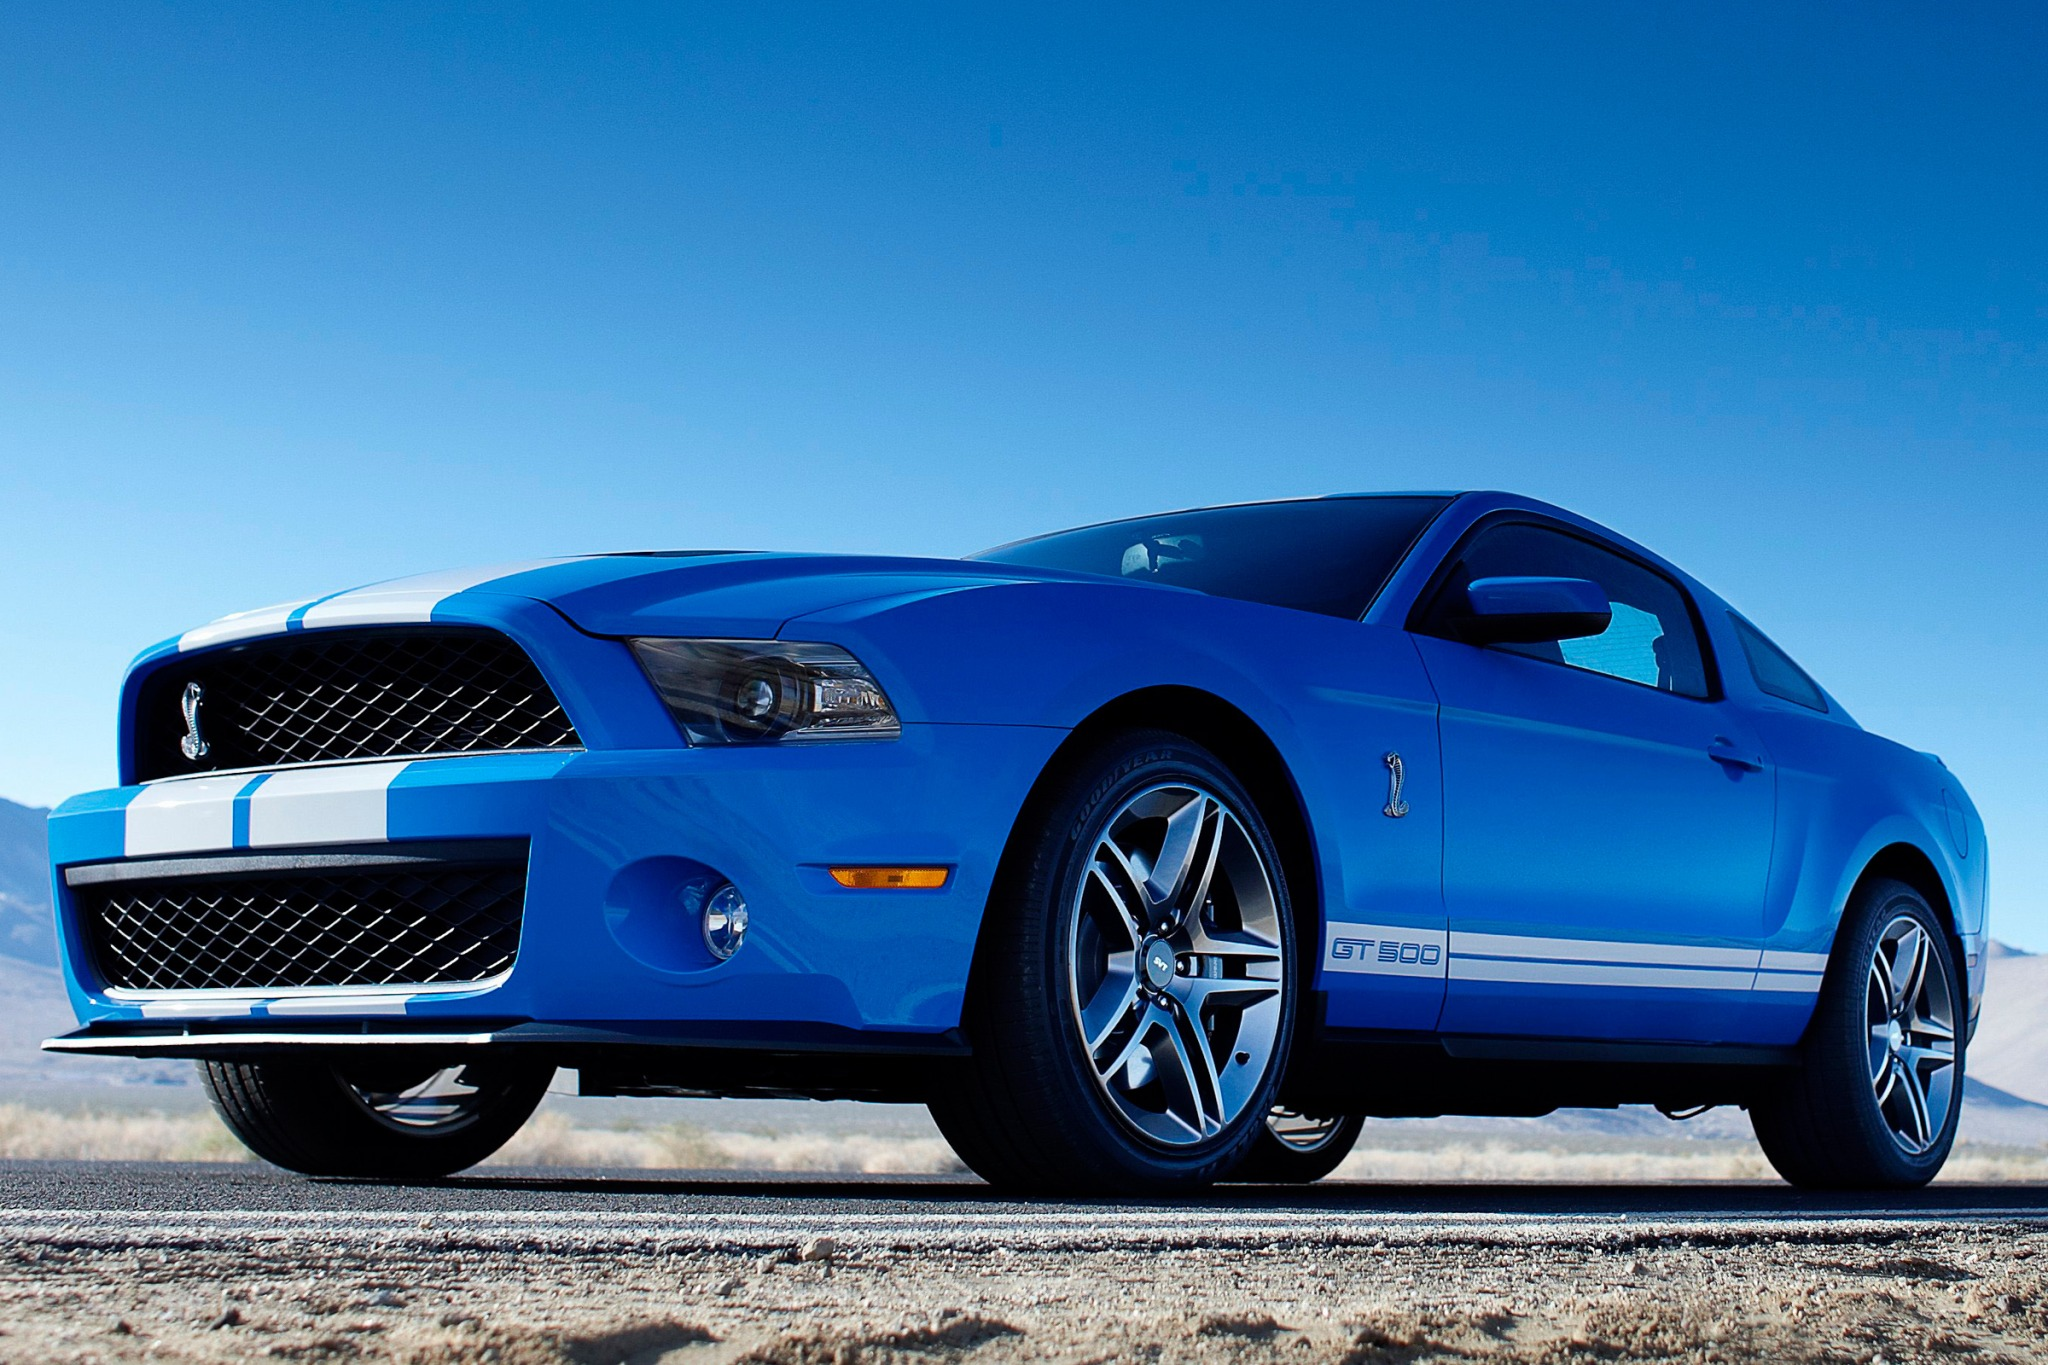 2010 Ford Shelby GT500 Ba exterior #1